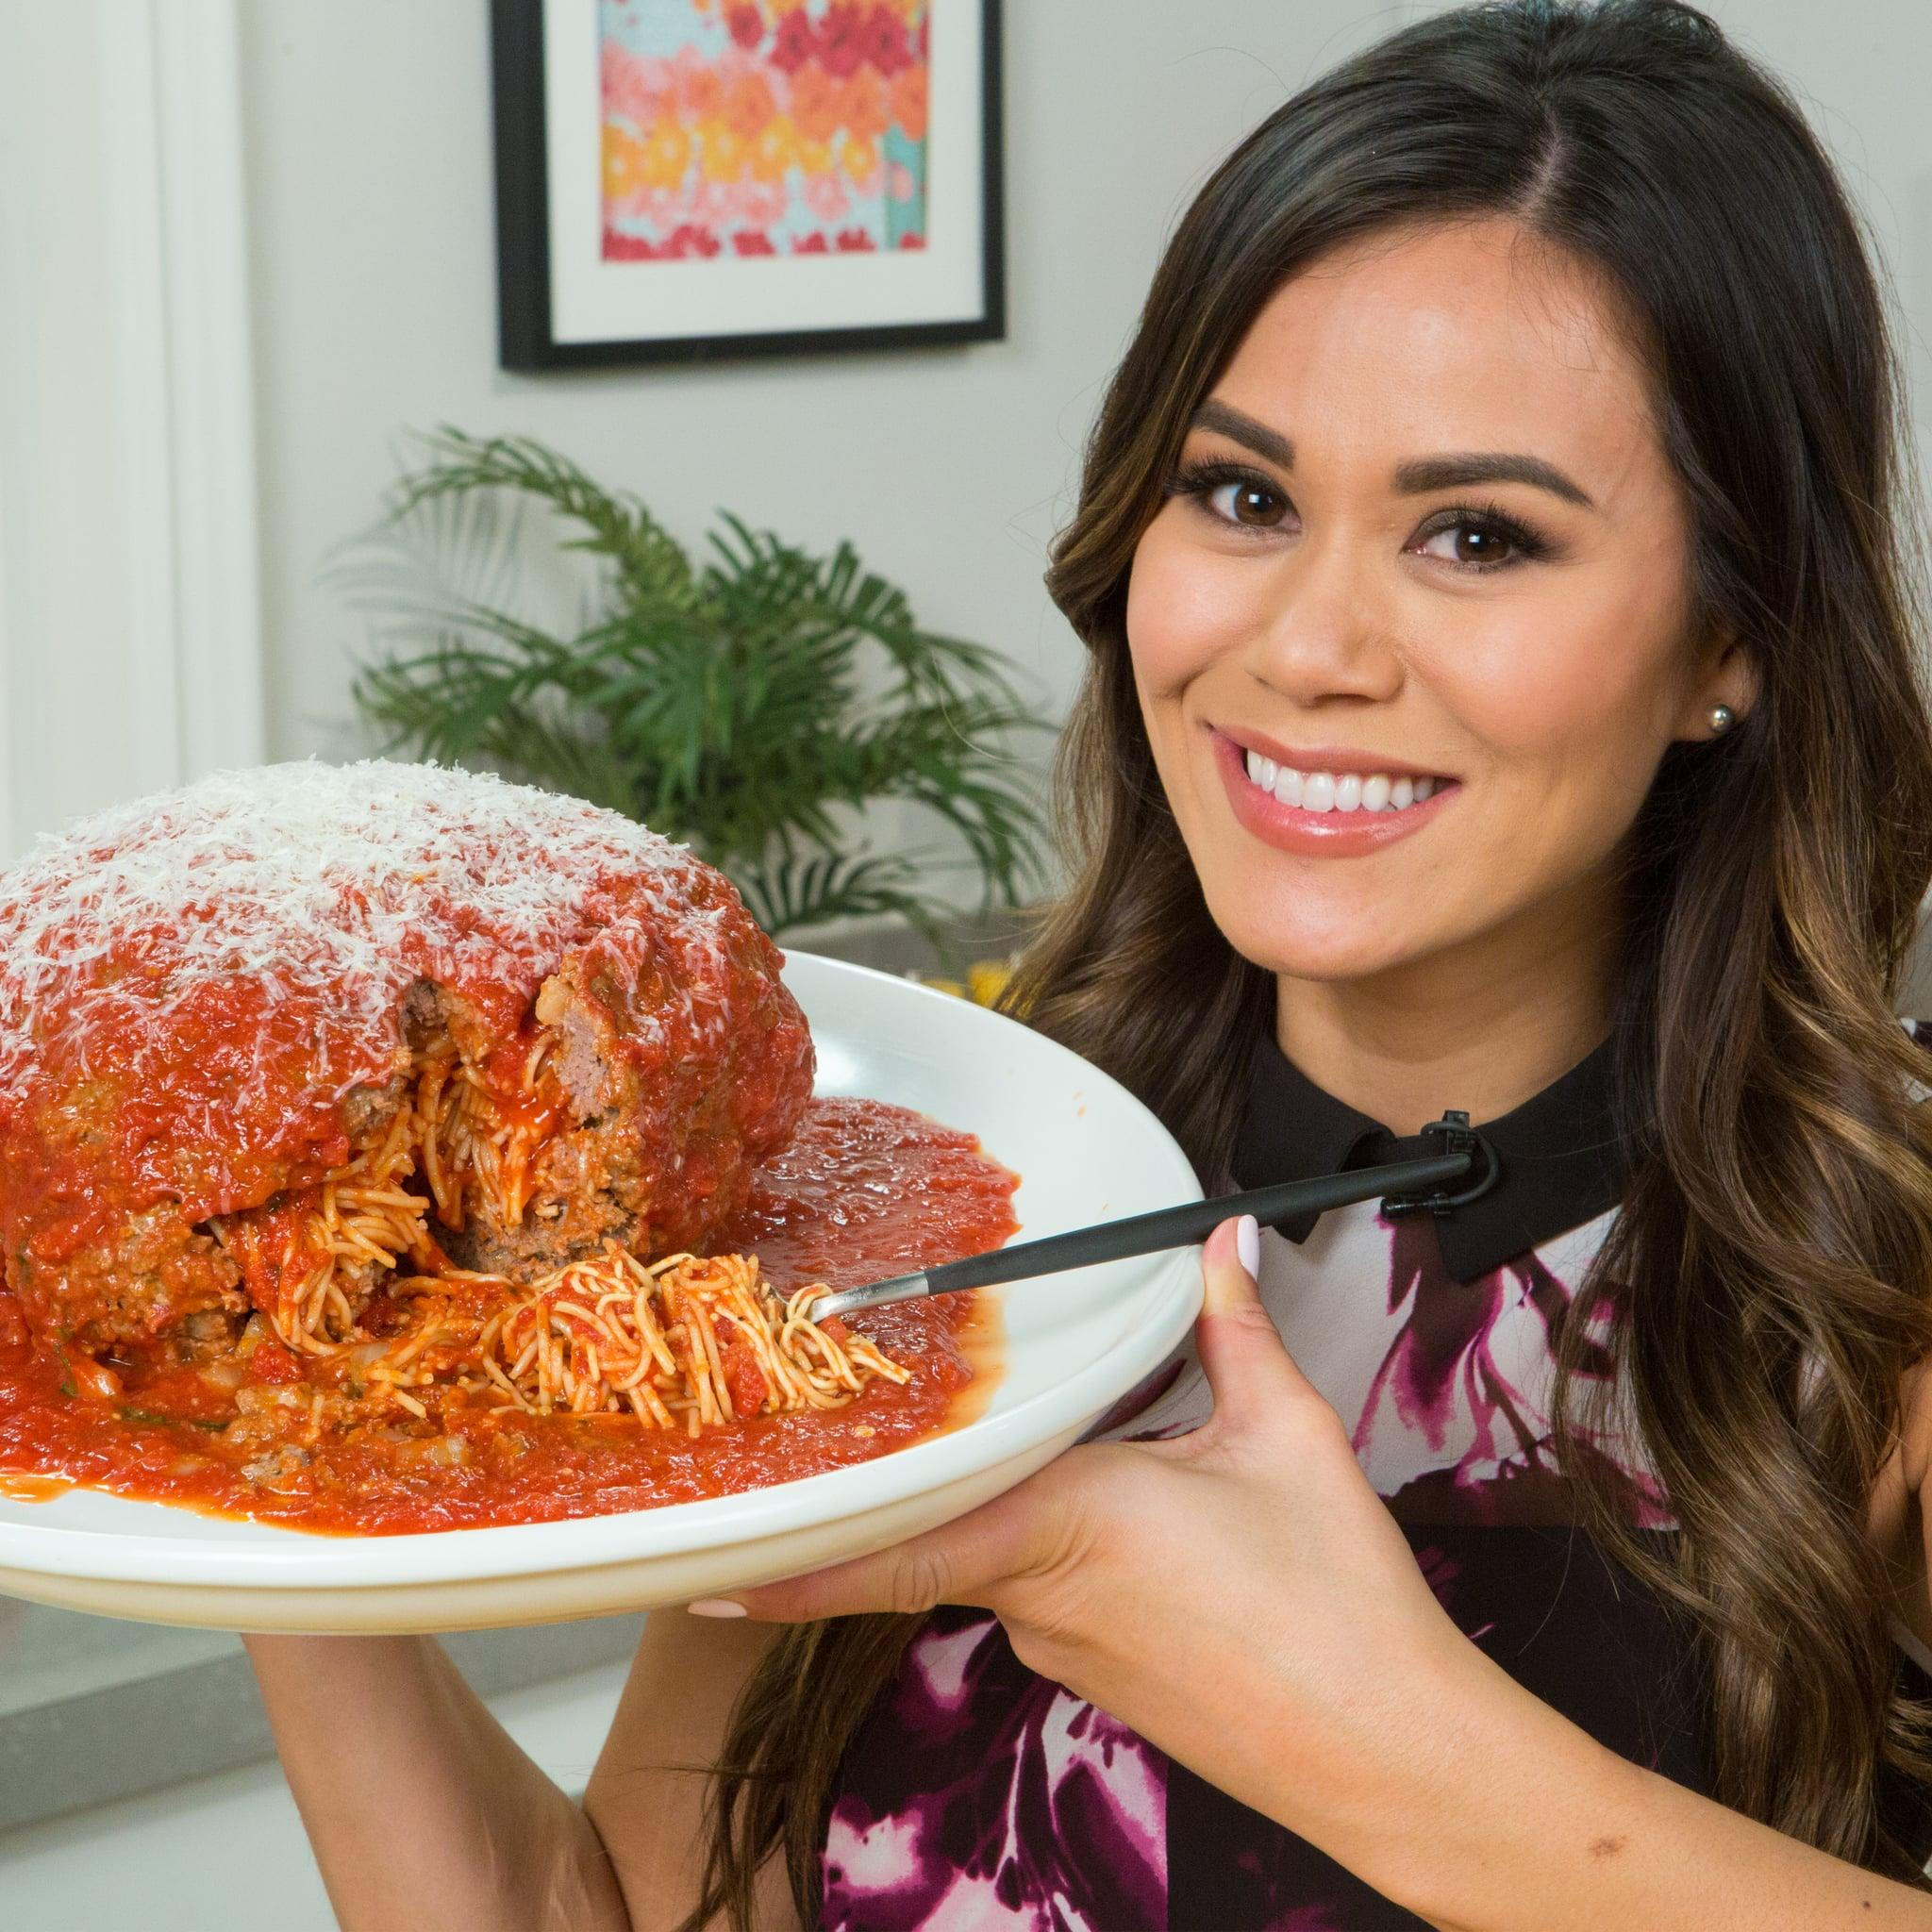 Eat The Trend Giant Meatball Stuffed With Spaghetti